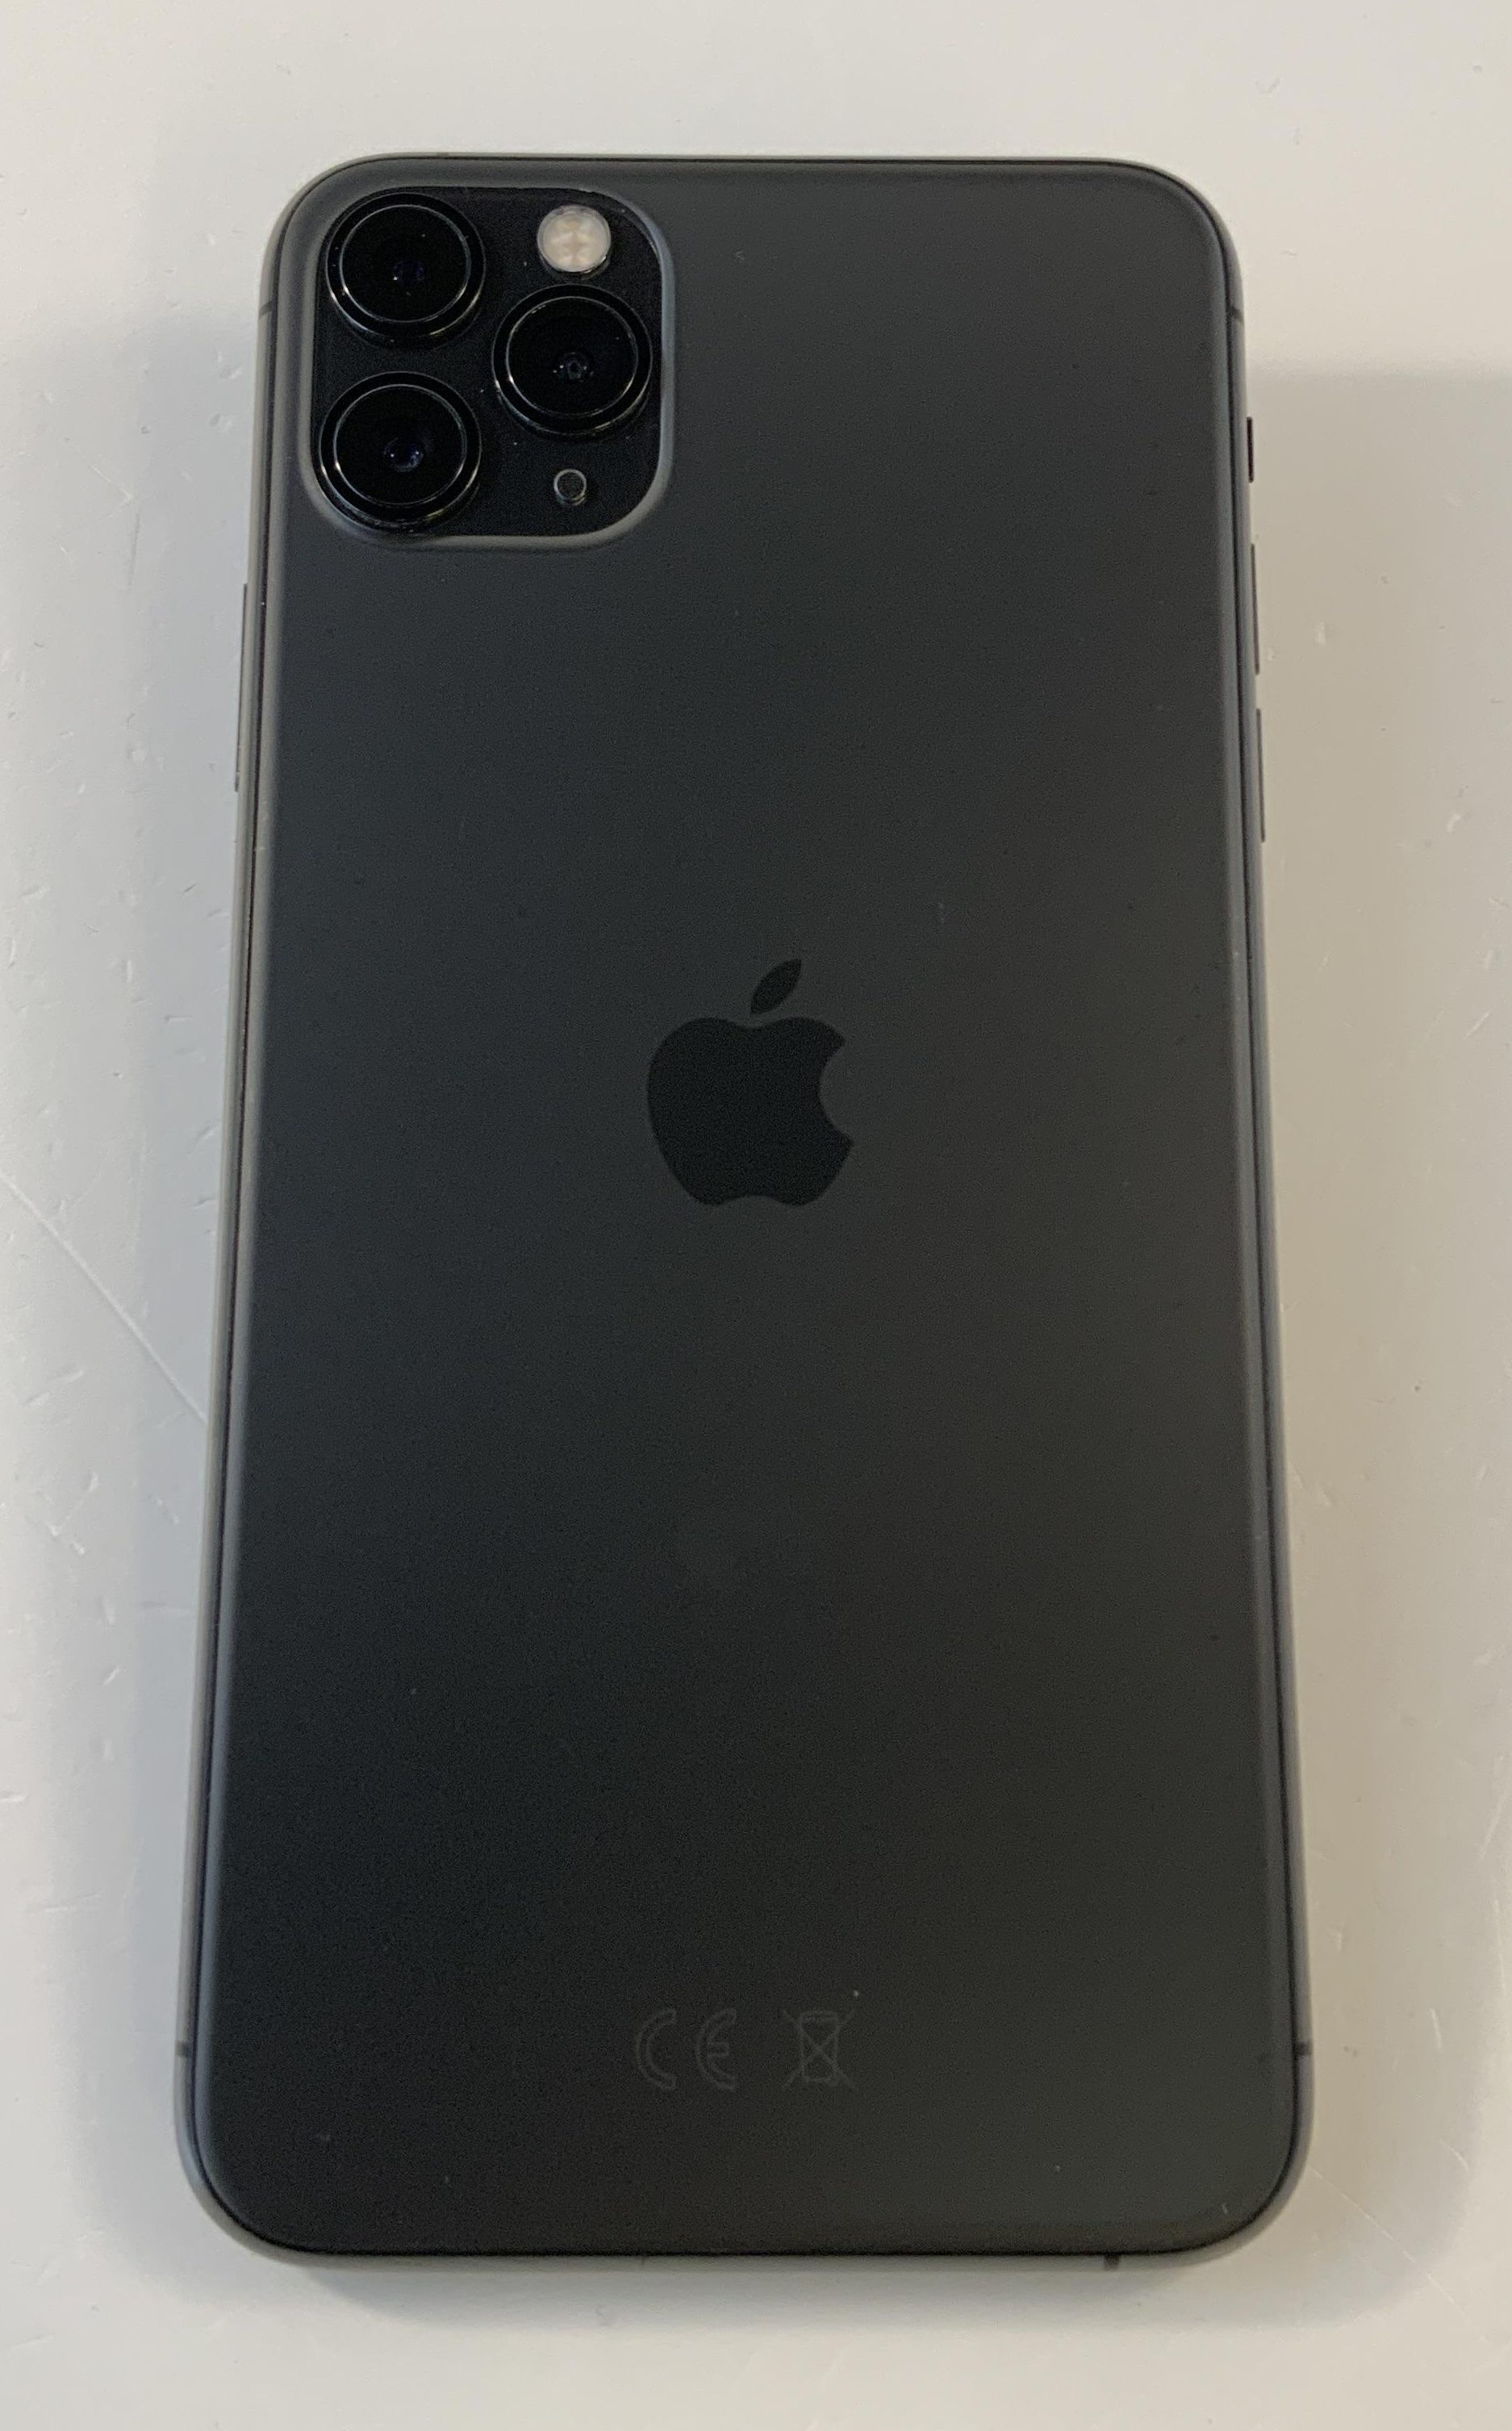 iPhone 11 Pro Max 64GB, 64GB, Space Gray, Afbeelding 2